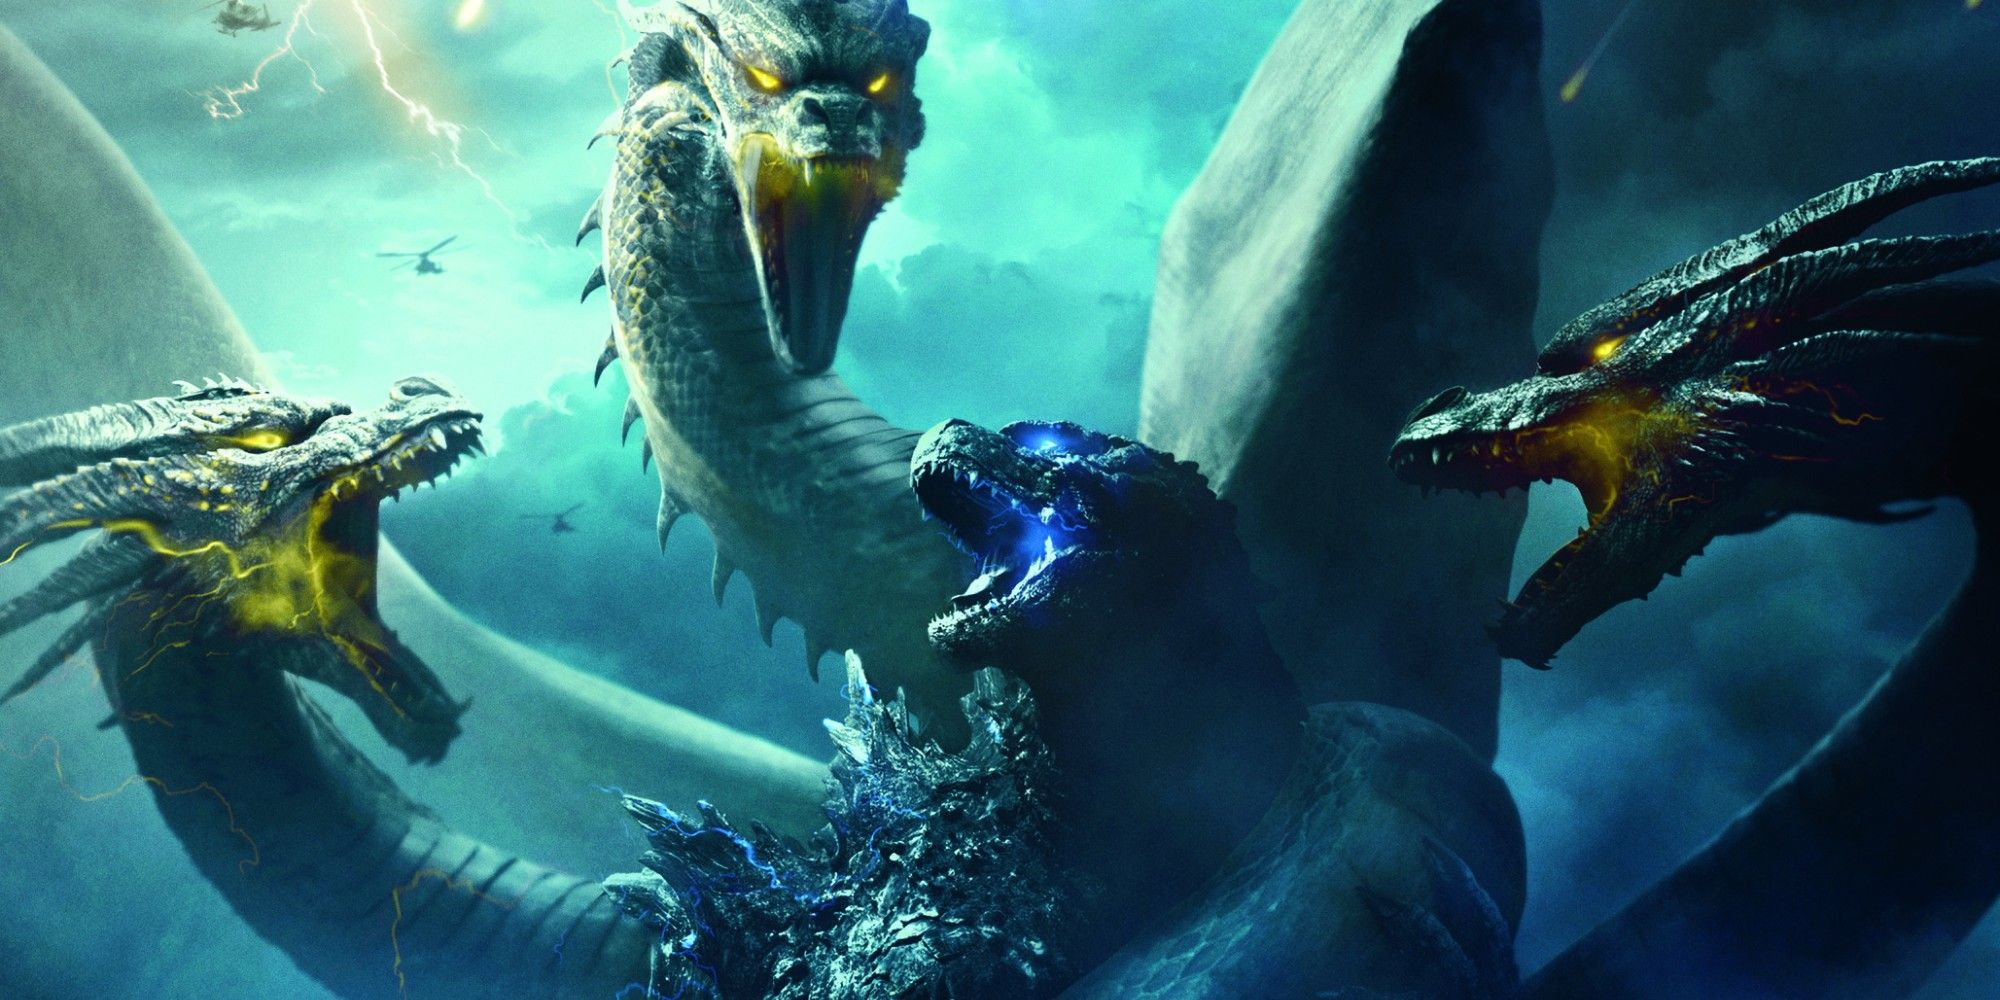 Movie Poster 2019: Godzilla: King Of The Monsters (2019) Movie Review